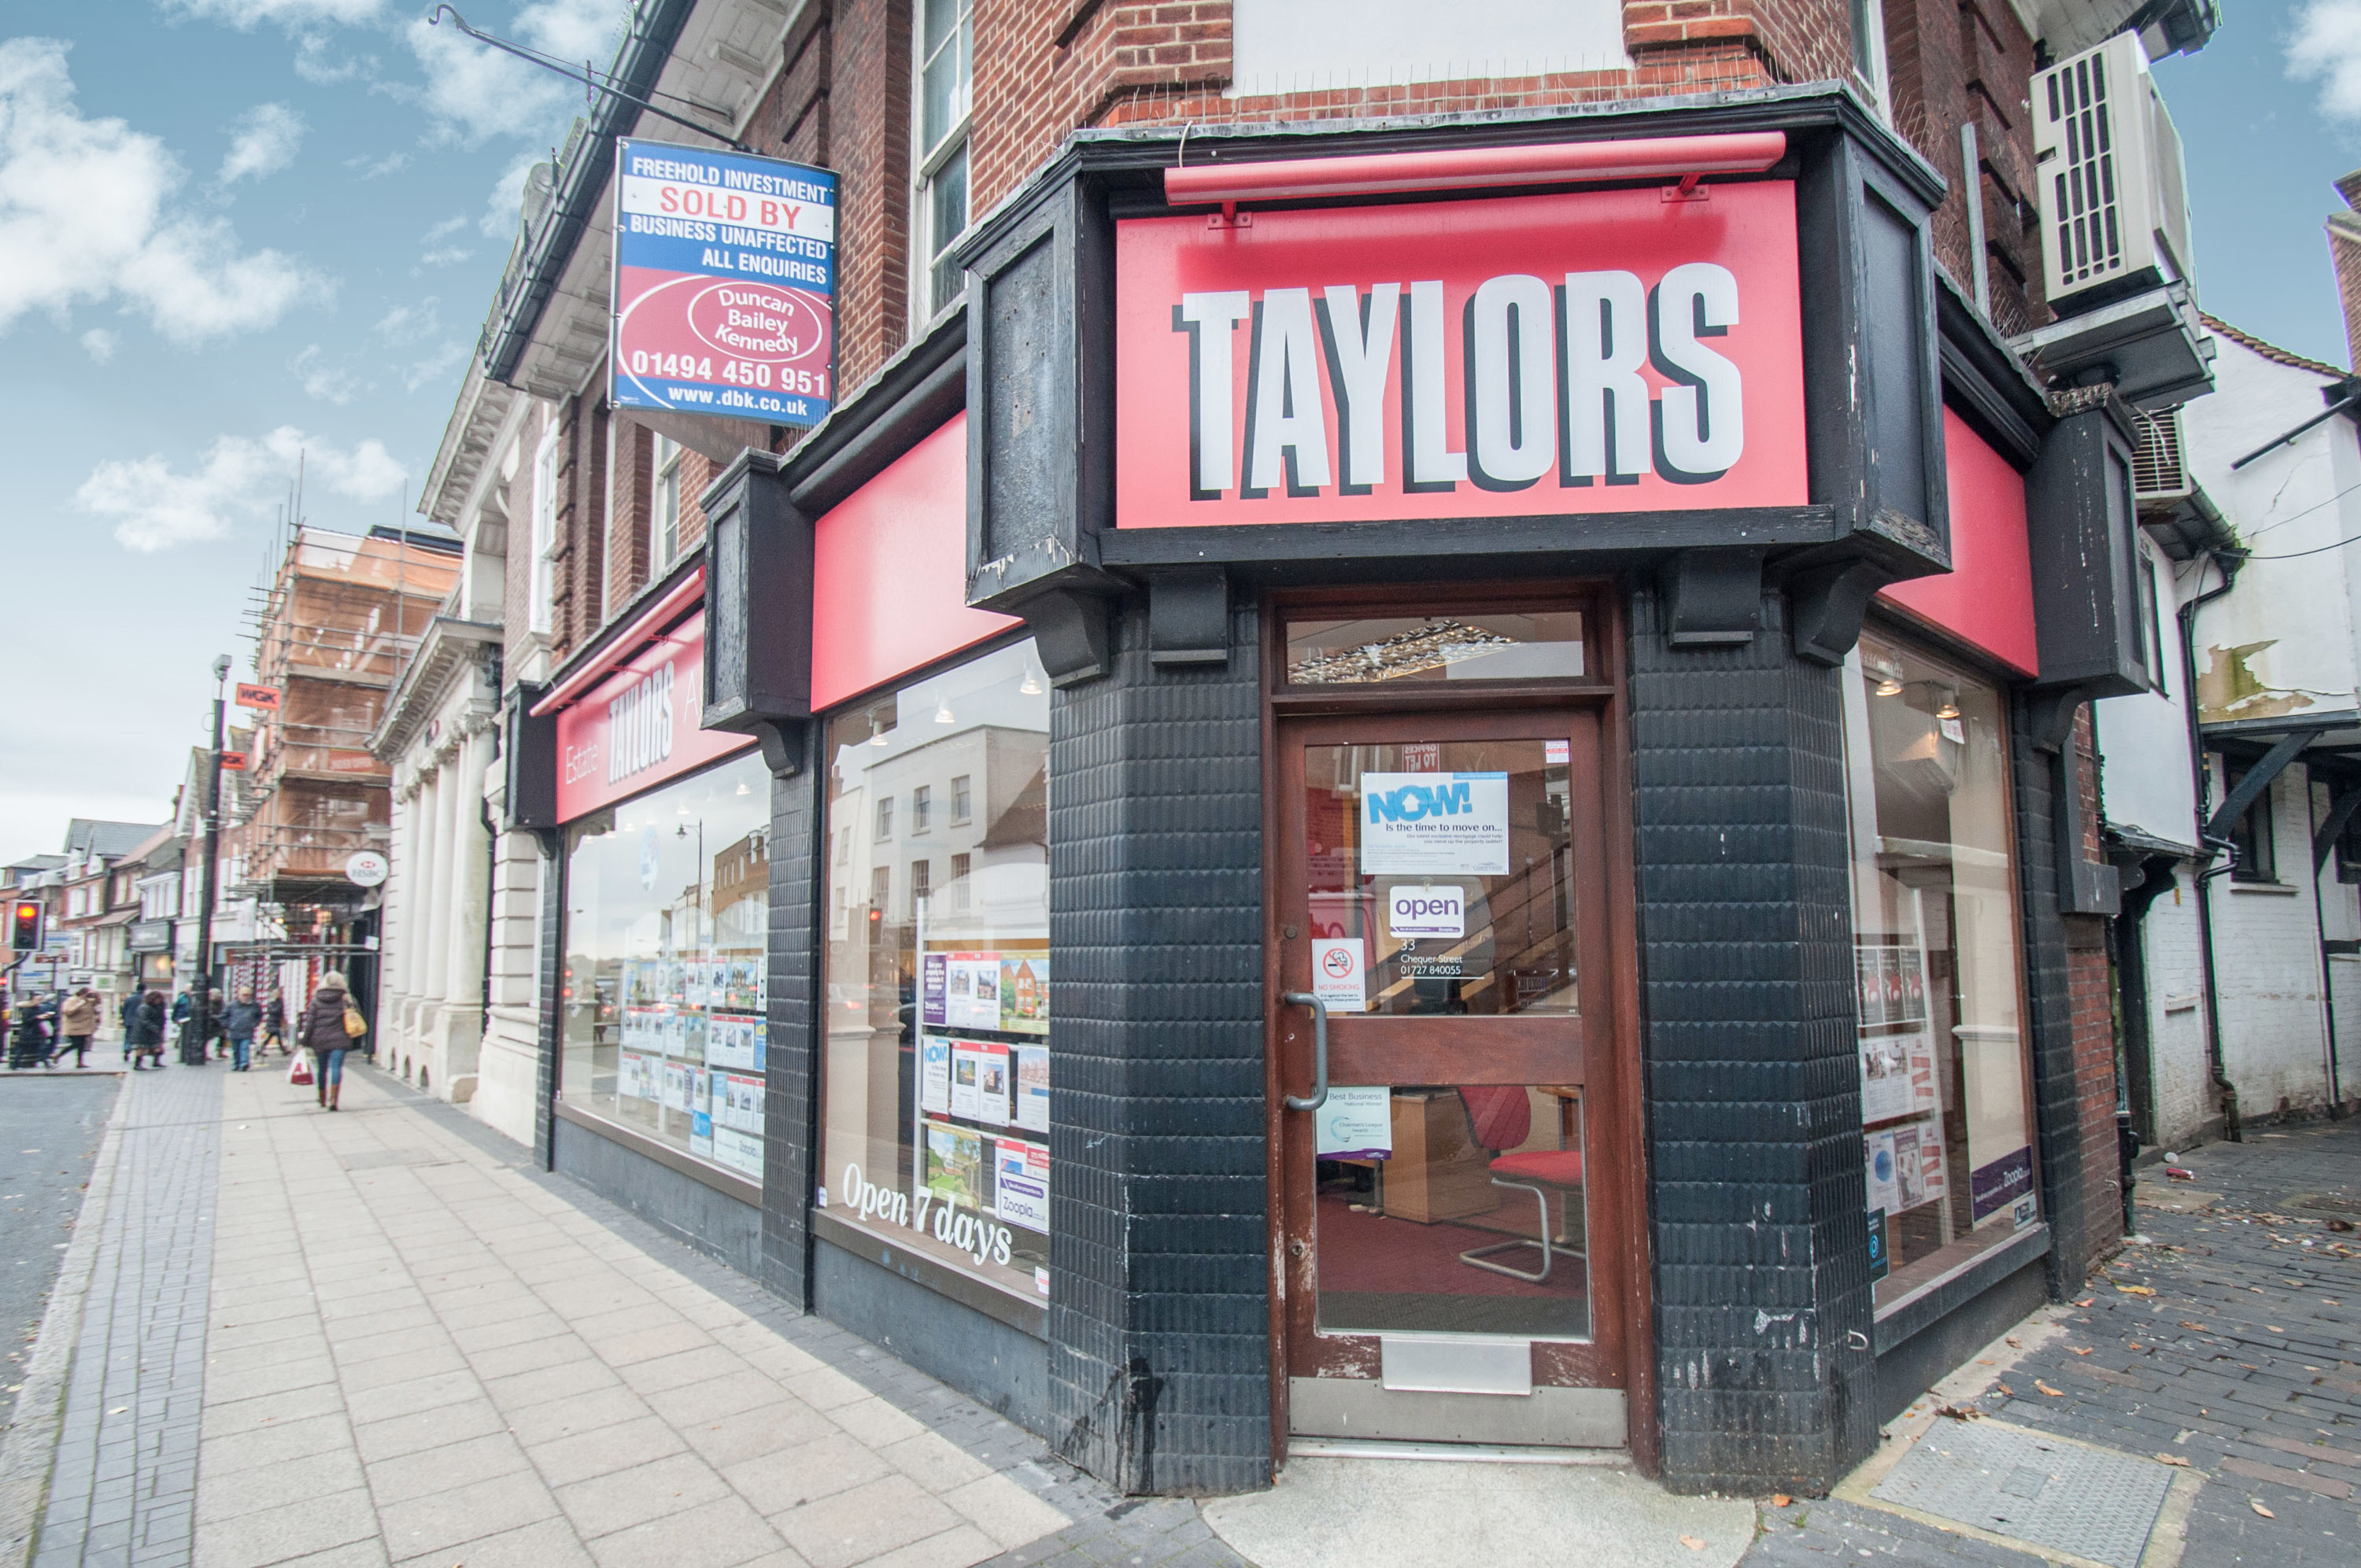 Taylors - CLOSED